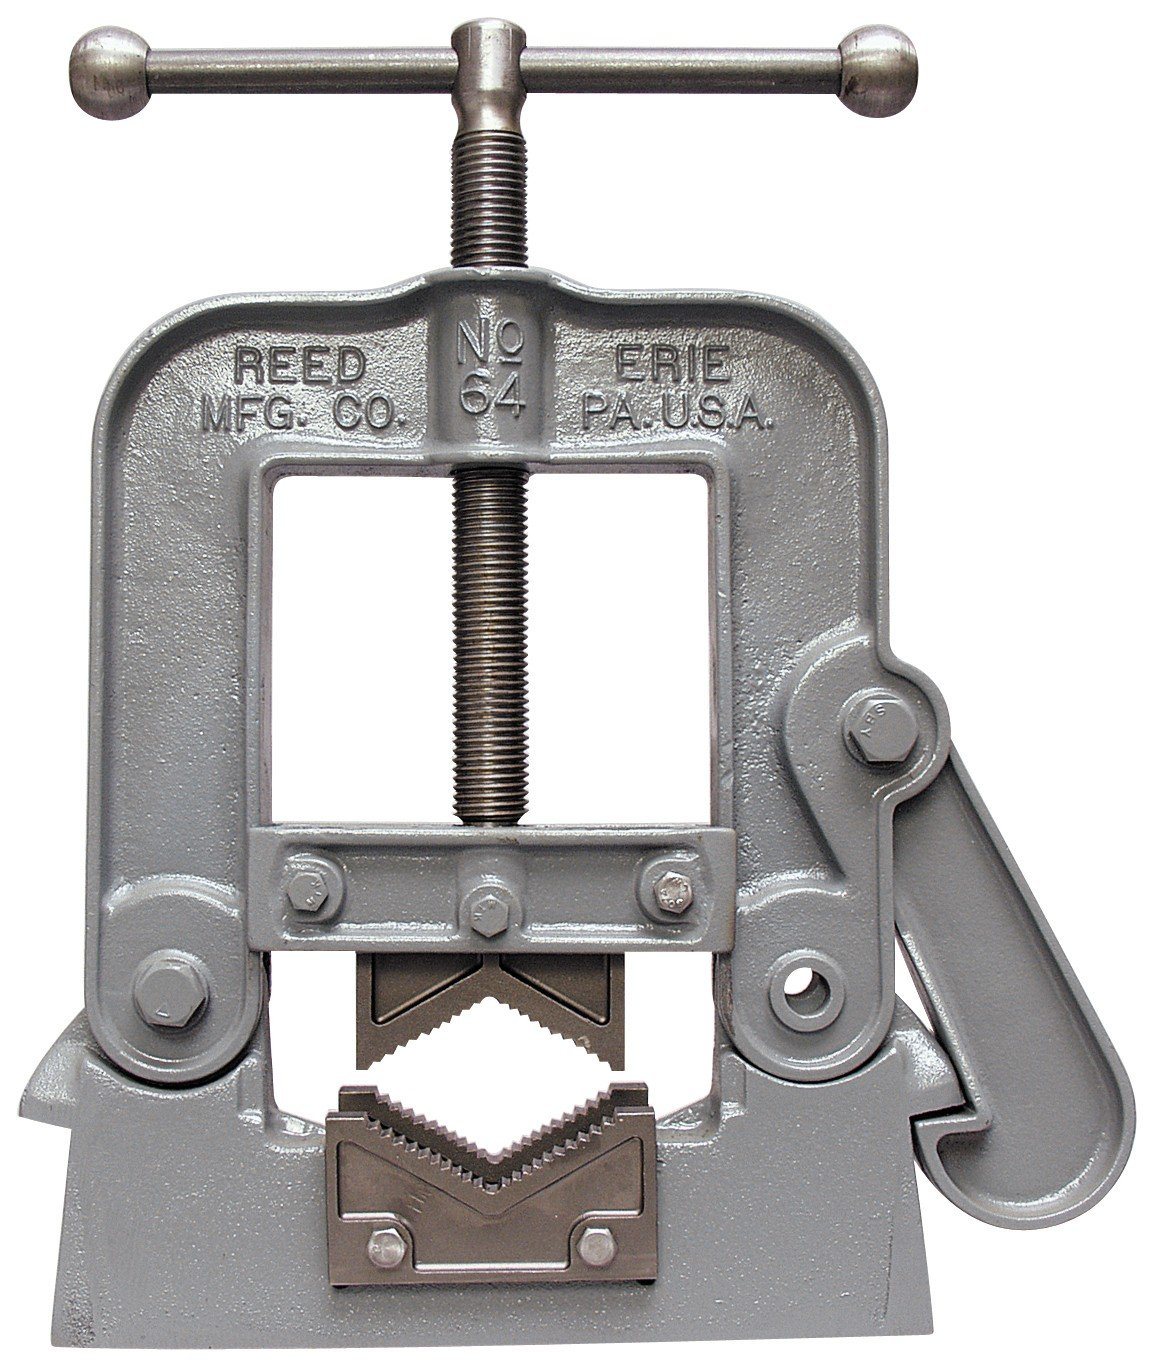 Reed Tool 65 Yoke Pipe Vise, 1 to 8-Inch